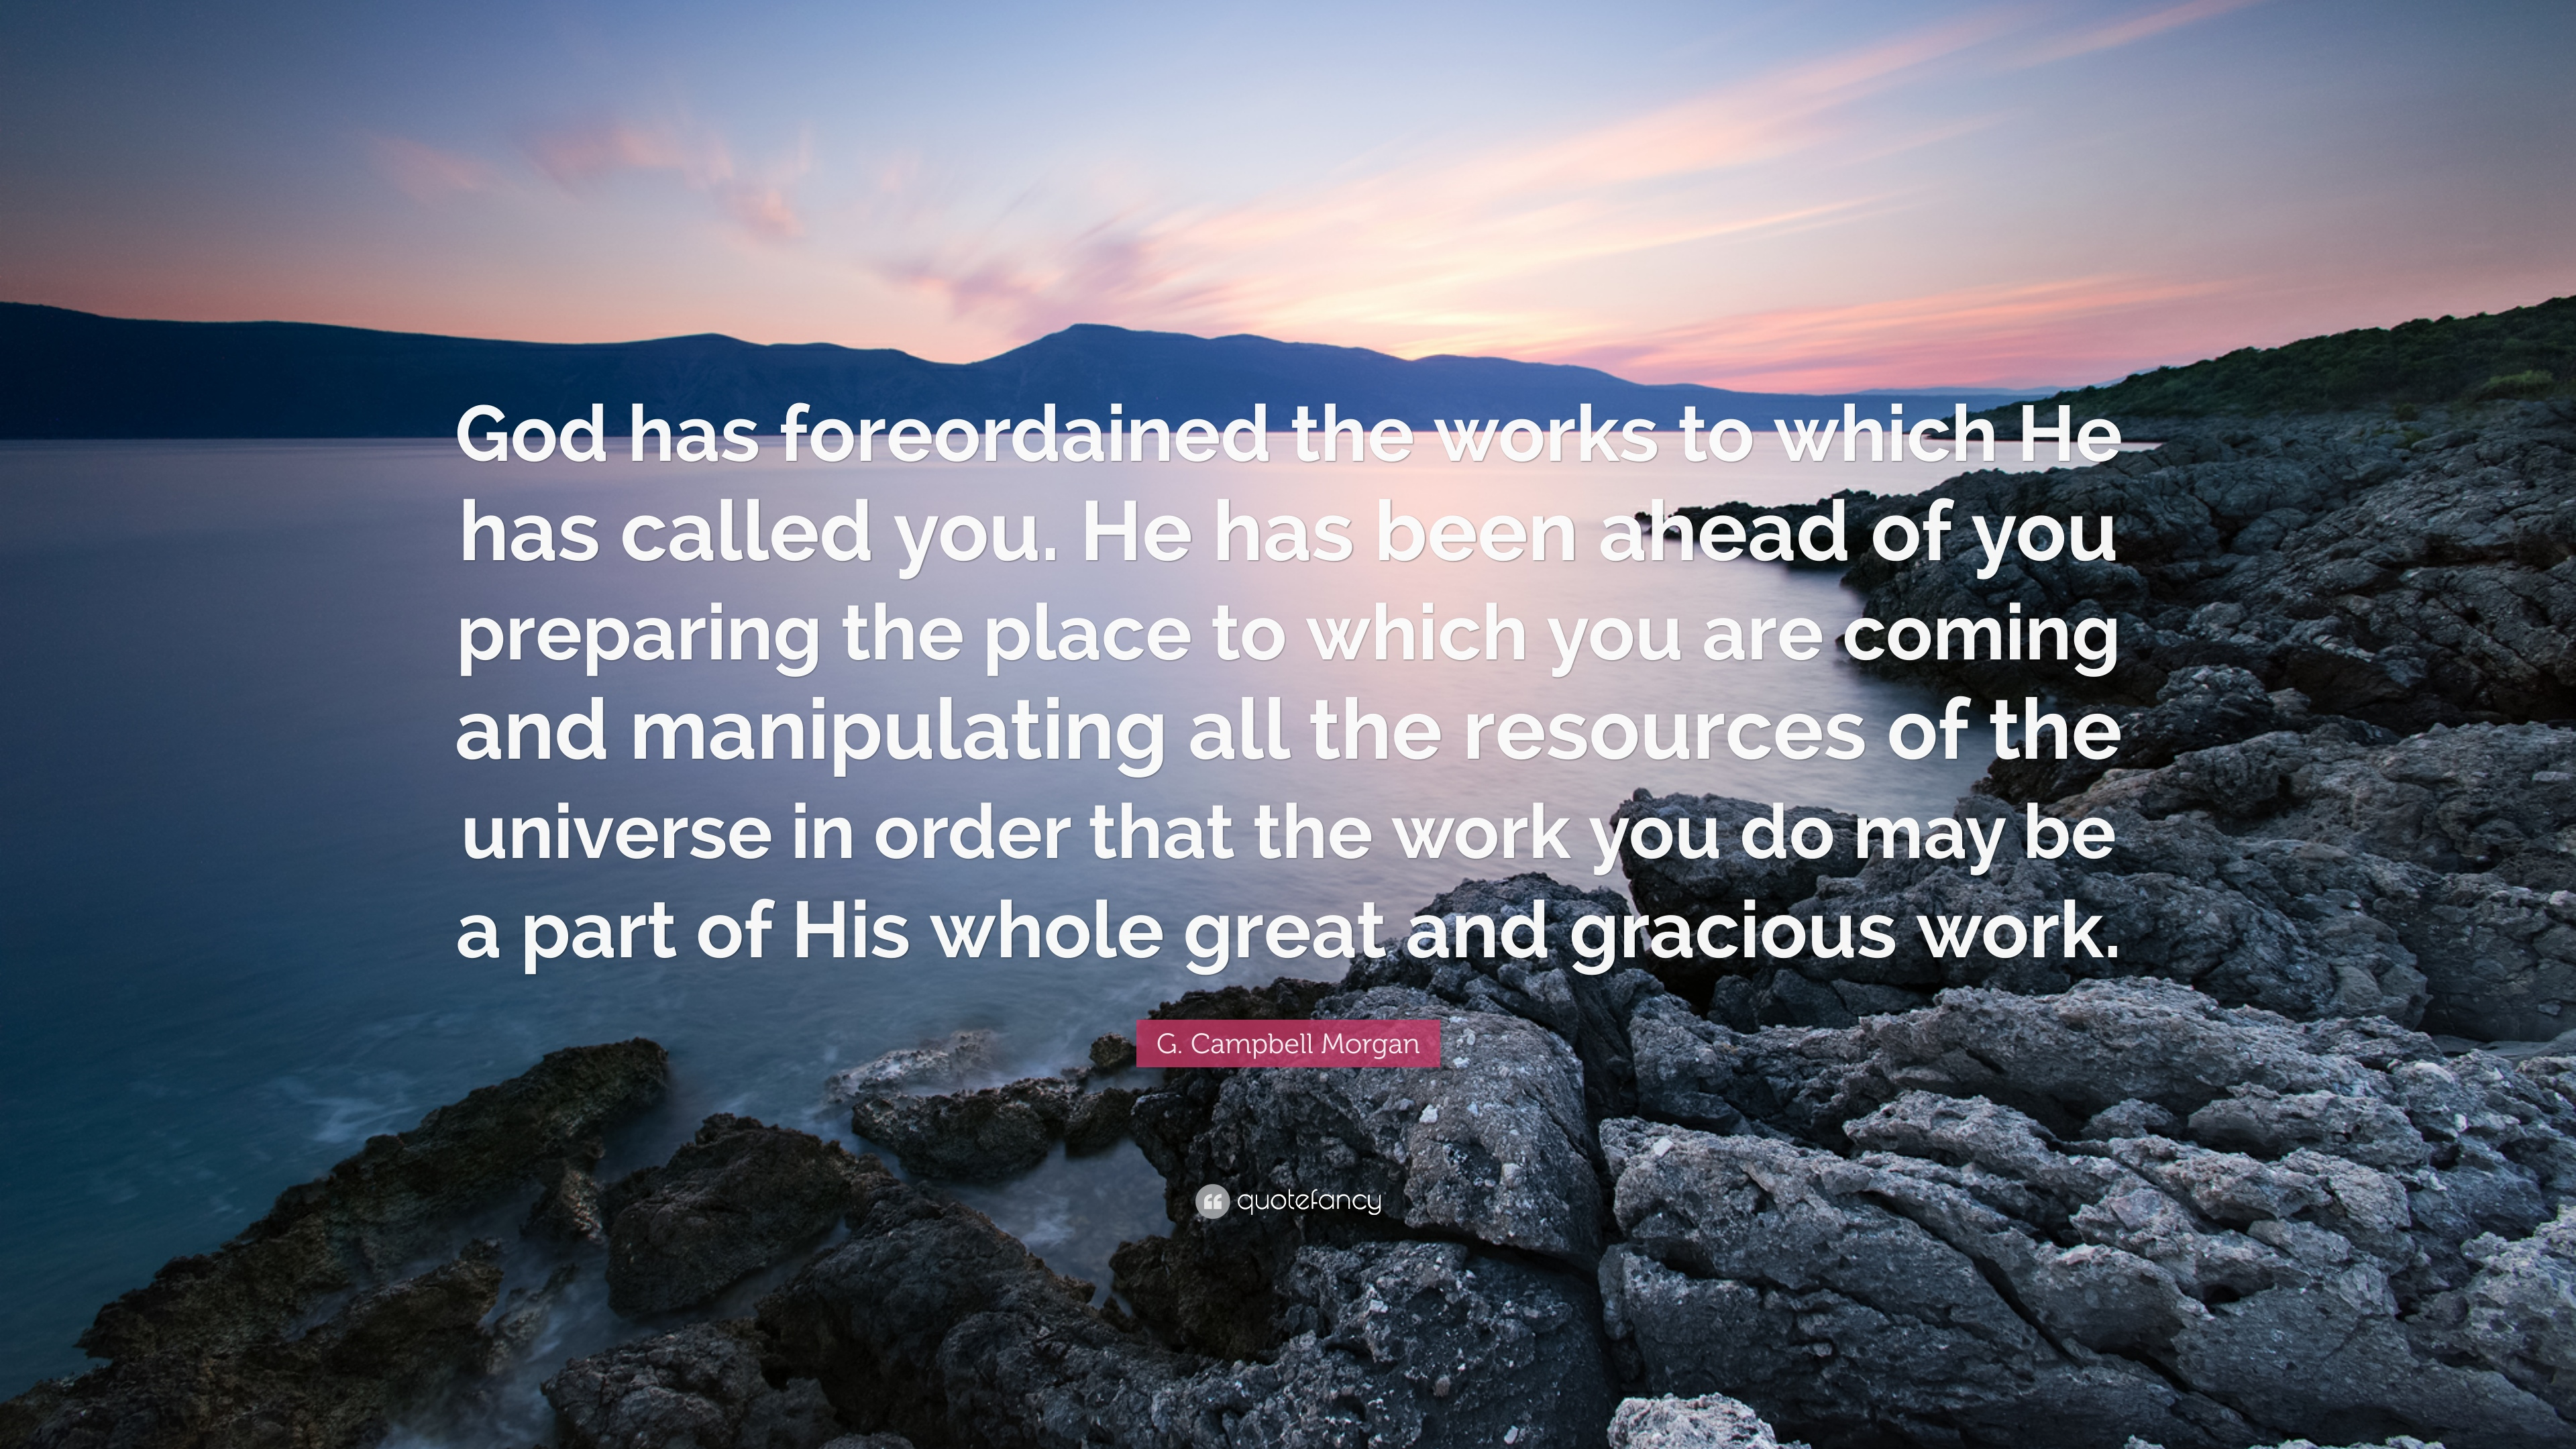 G campbell morgan quote god has foreordained the works to which he has